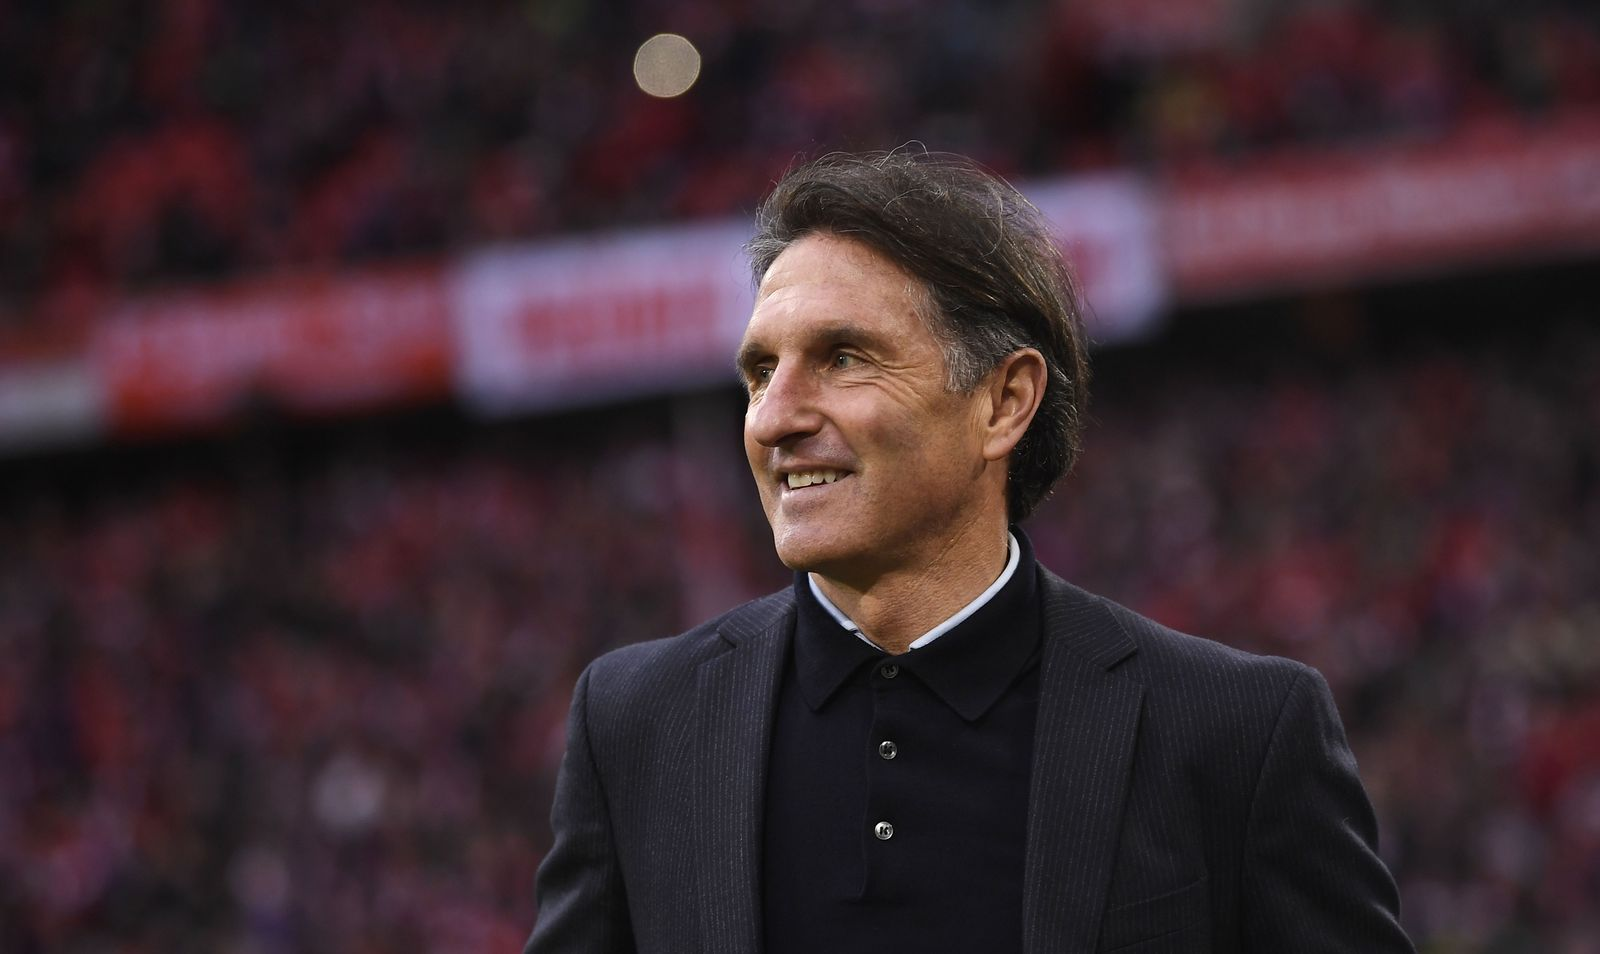 Bruno Labbadia new head coach of Hertha Berlin, as media reports, Munich, Germany - 09 Mar 2019